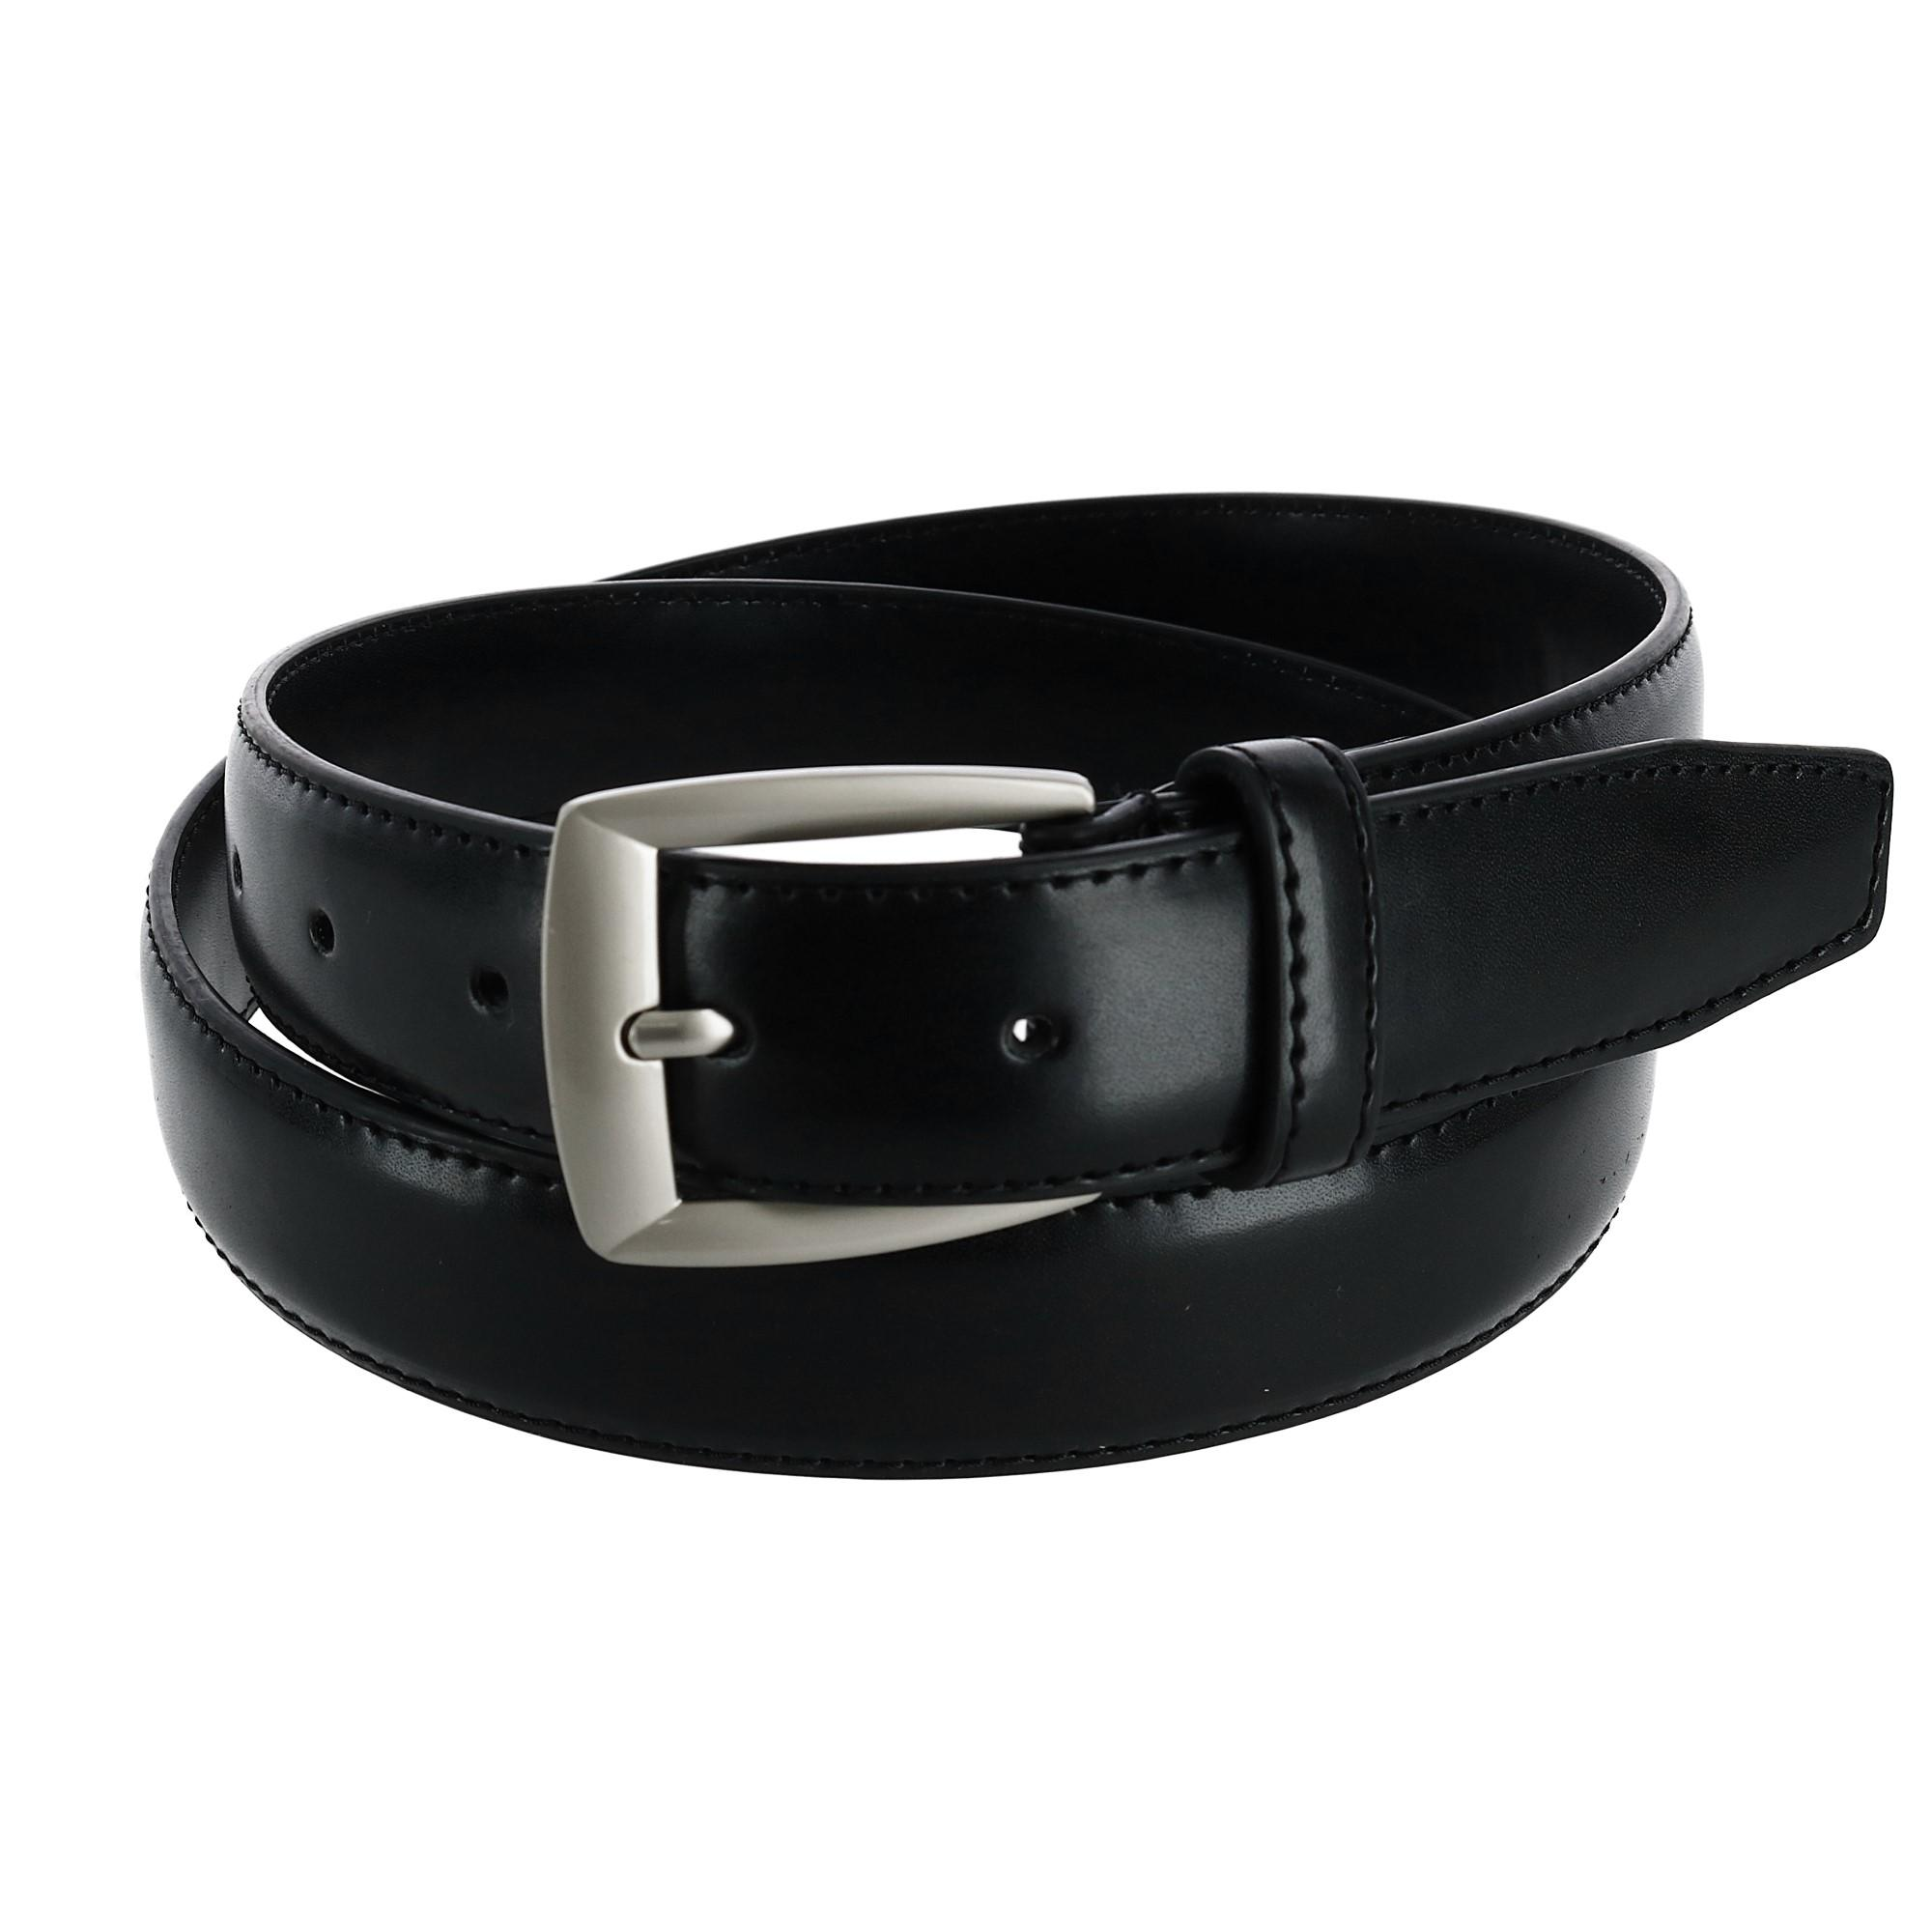 Ctm Mens Leather 1 1/4 Inch Basic Dress Belt